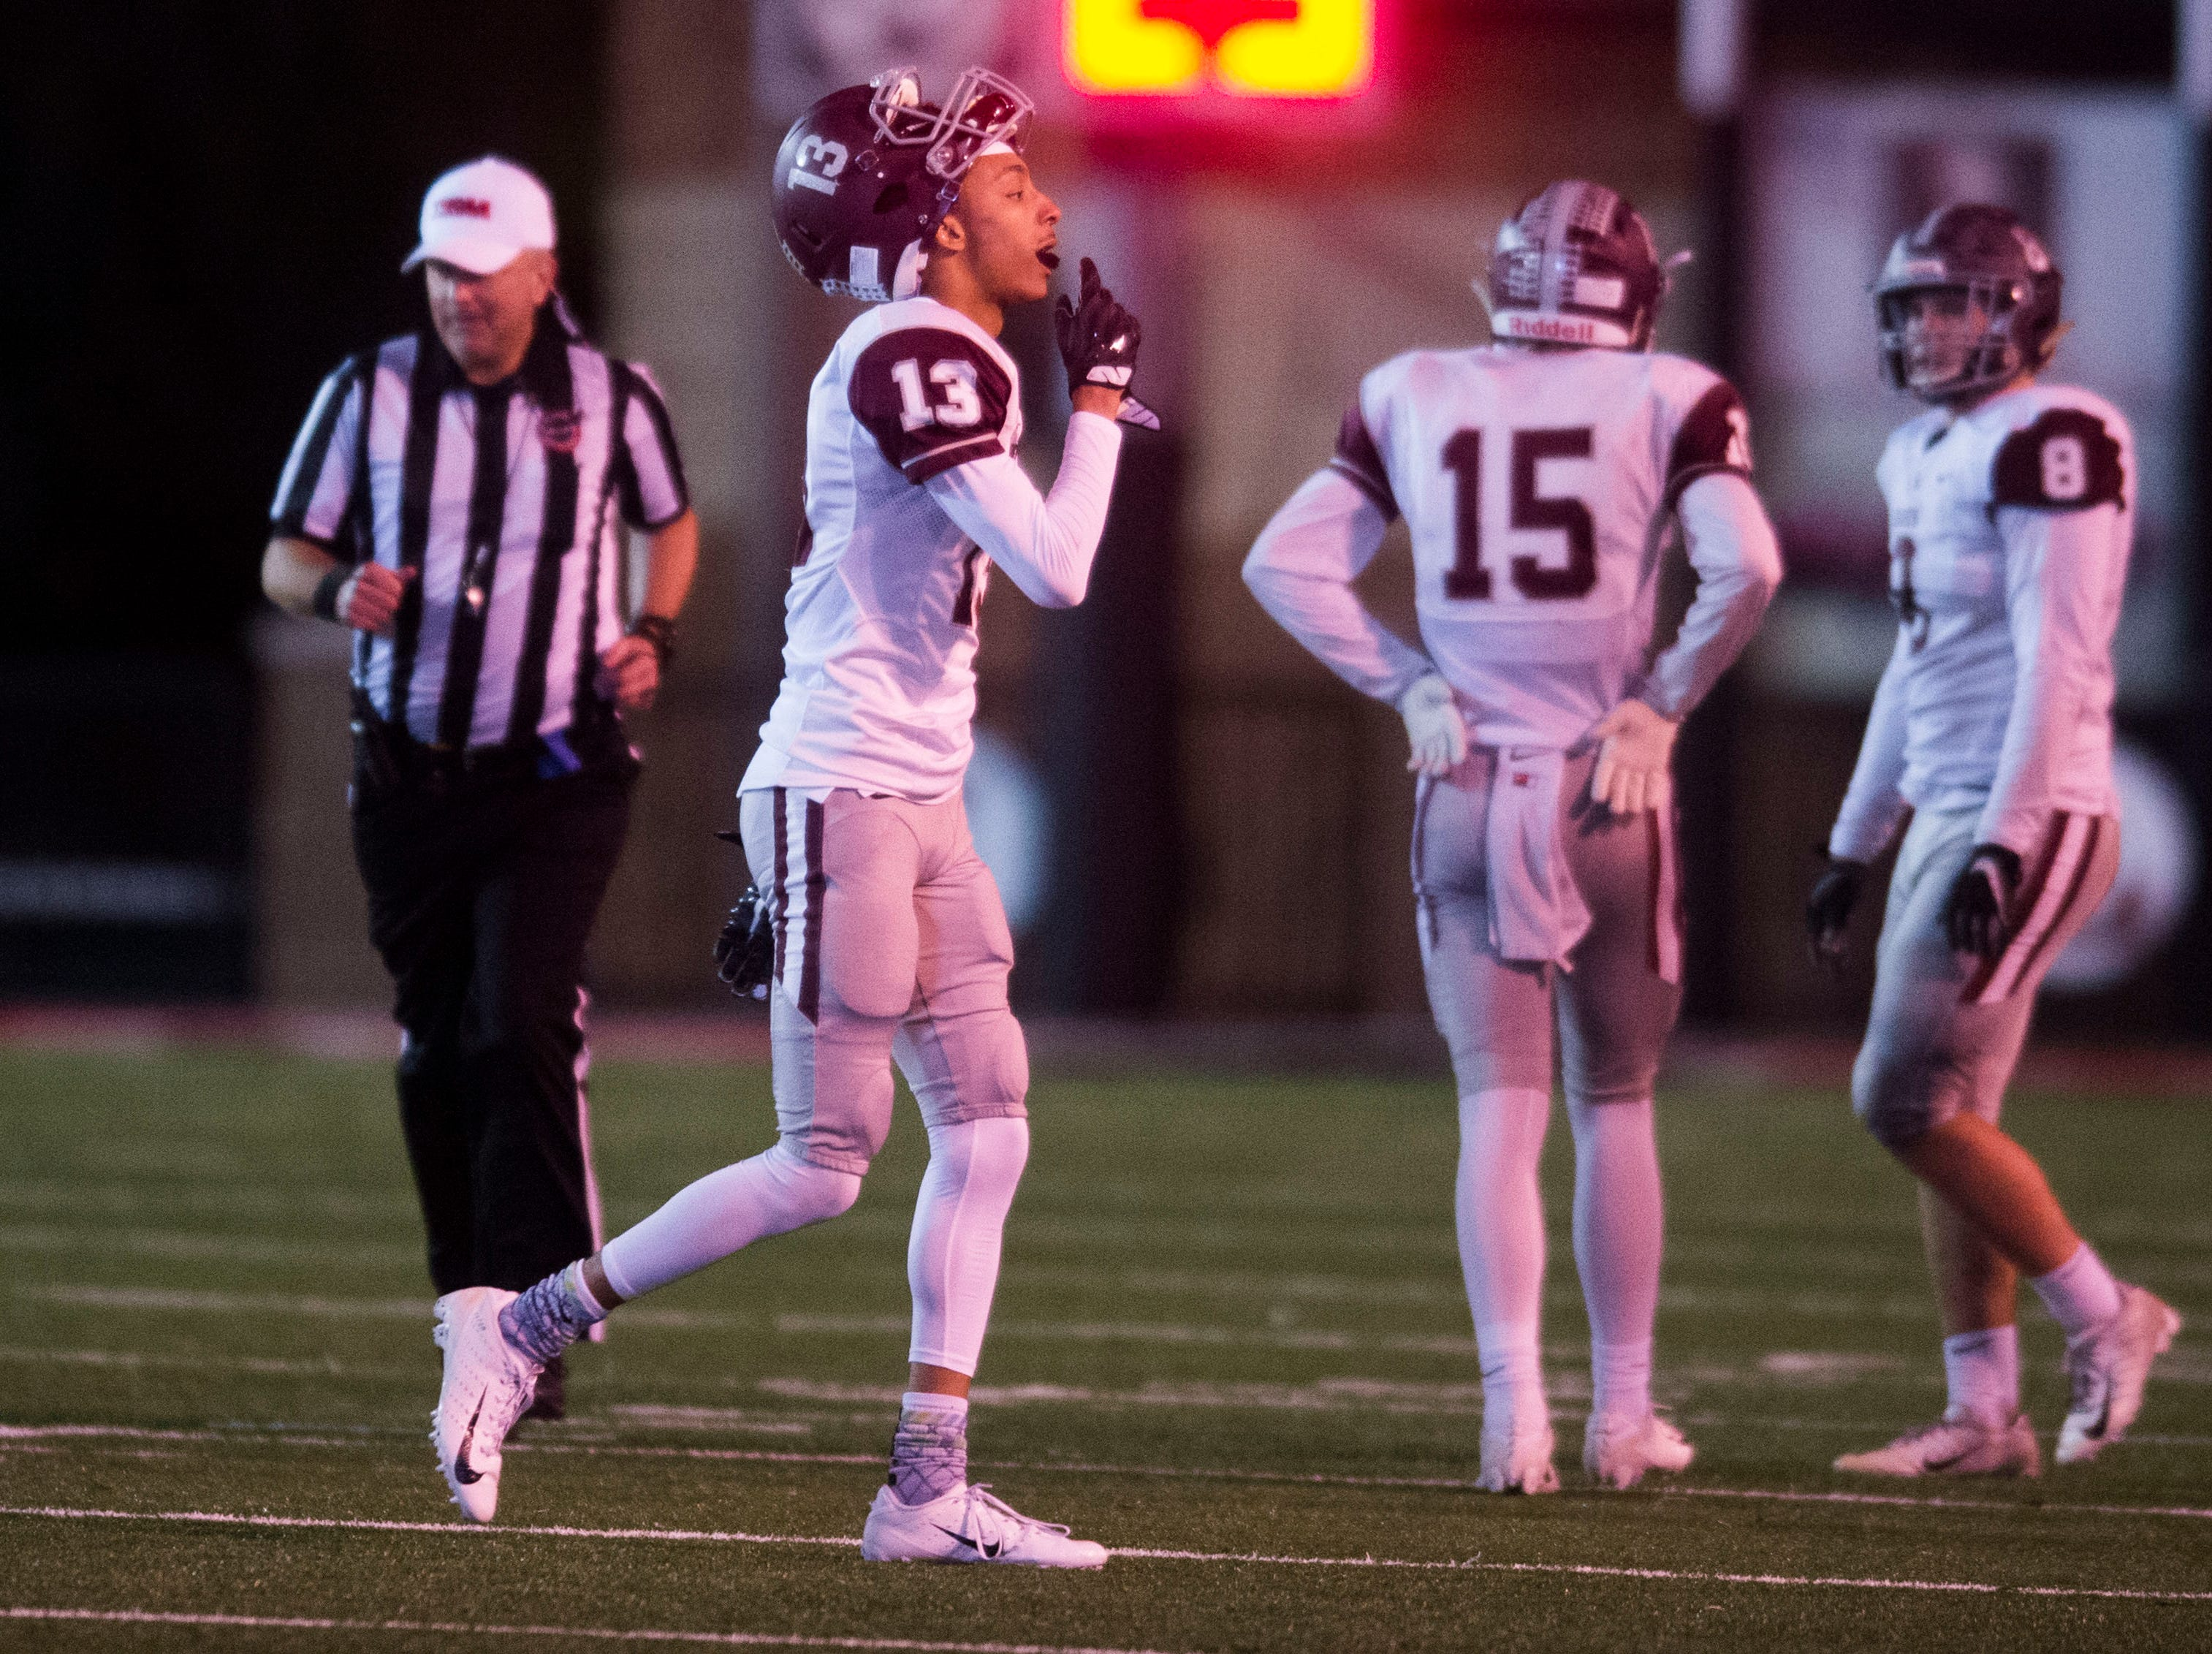 Bearden's Roman Robinson (13) walks off the field after a turnover during a first round playoff game between Maryville and Bearden at Maryville, Friday, Nov. 2, 2018. Maryville defeated Bearden 28-7.